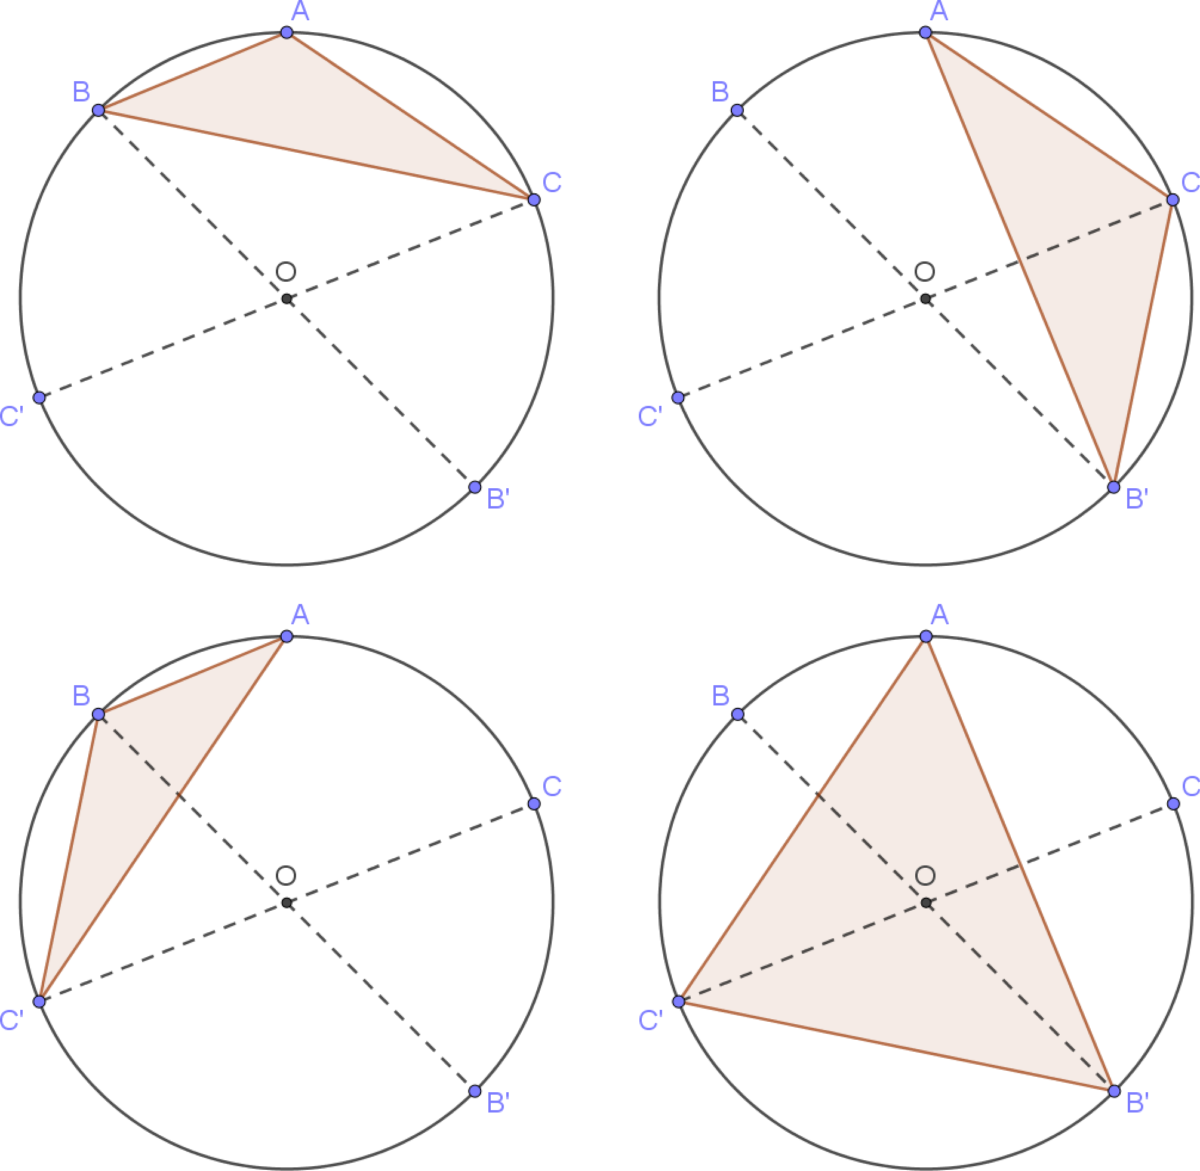 Inscribed triangles and tetrahedra